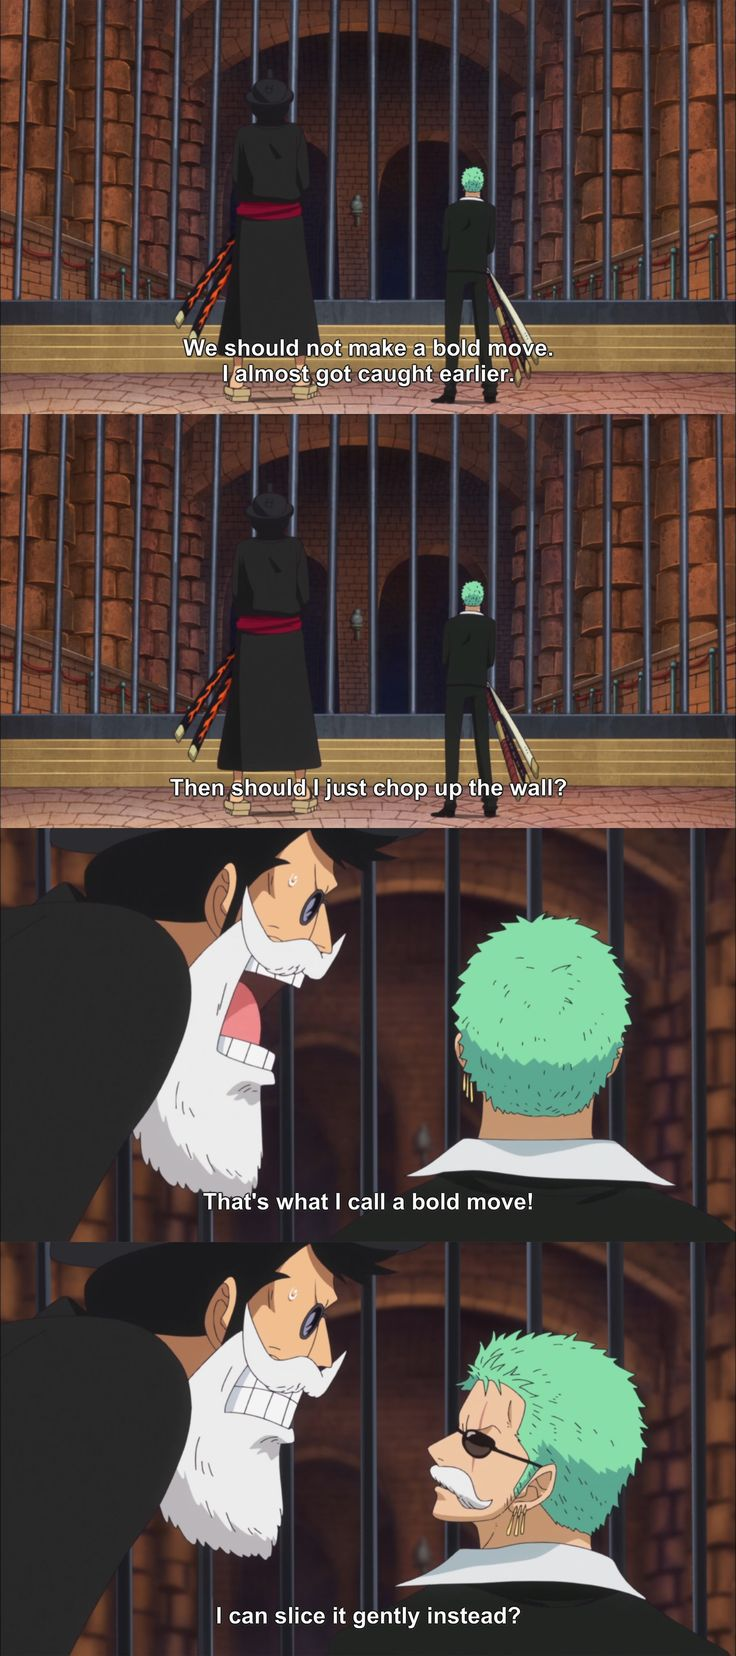 *facepalm* Zoro is as senseless to using logic as he is with his sense of direction